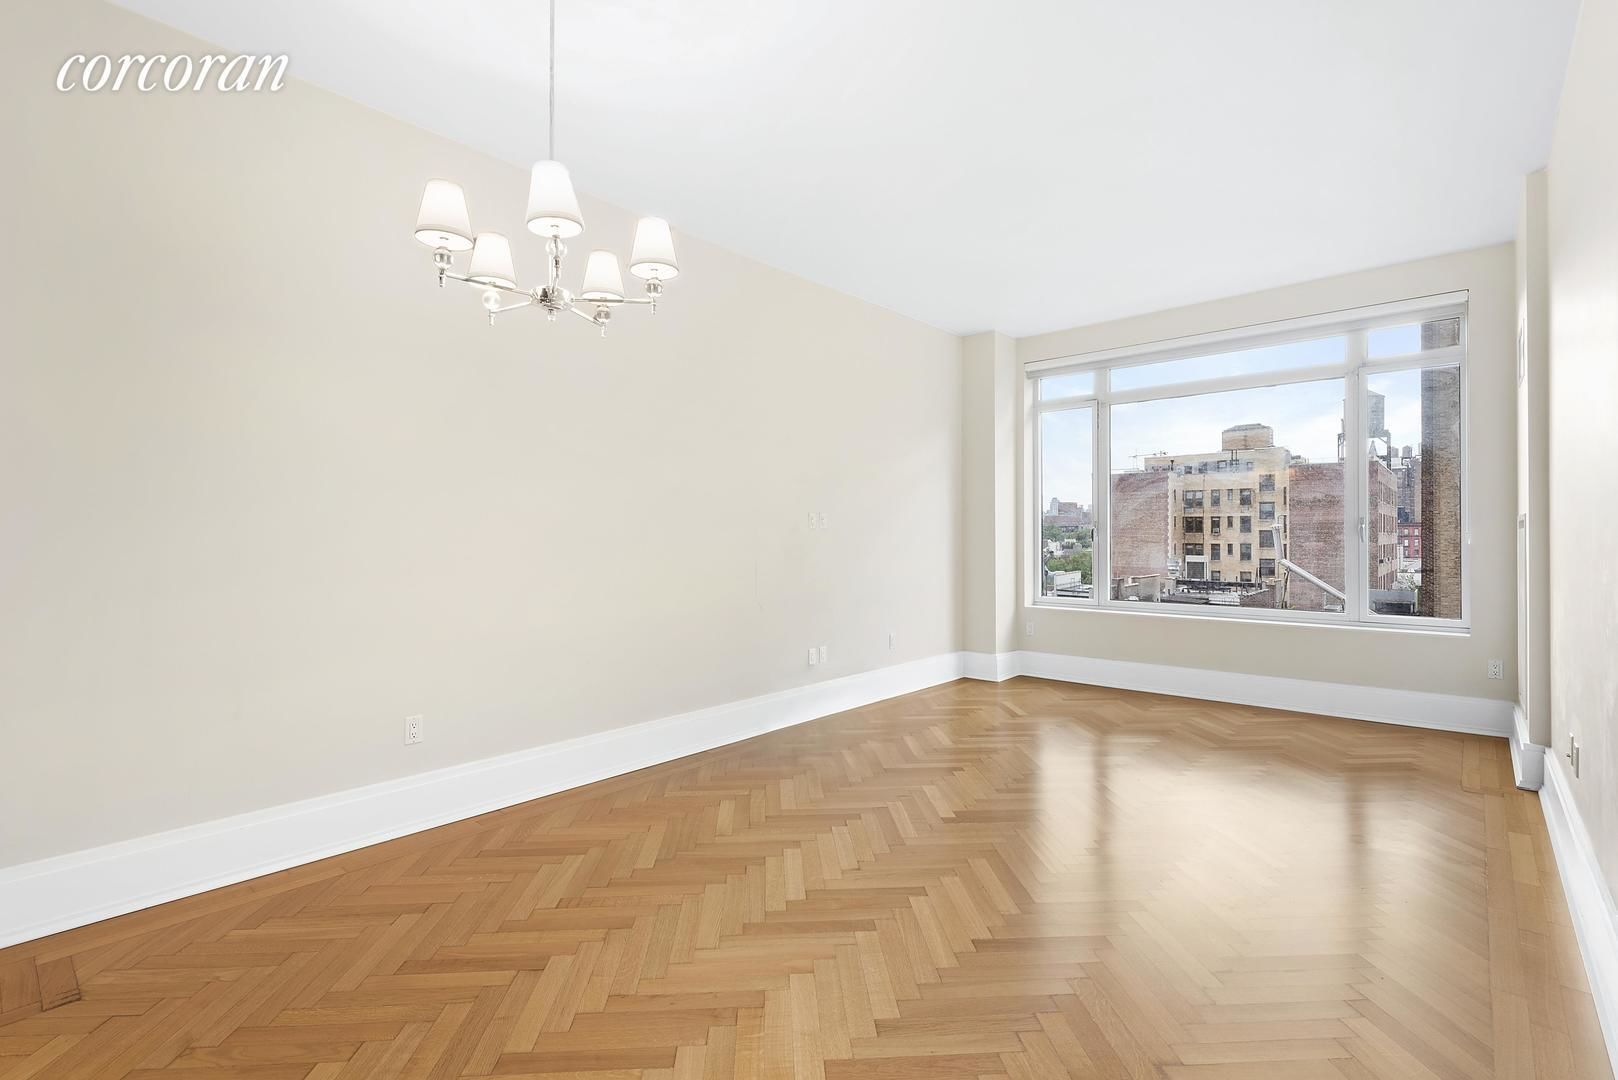 Apartment for sale at 205 West 76th Street, Apt 8C